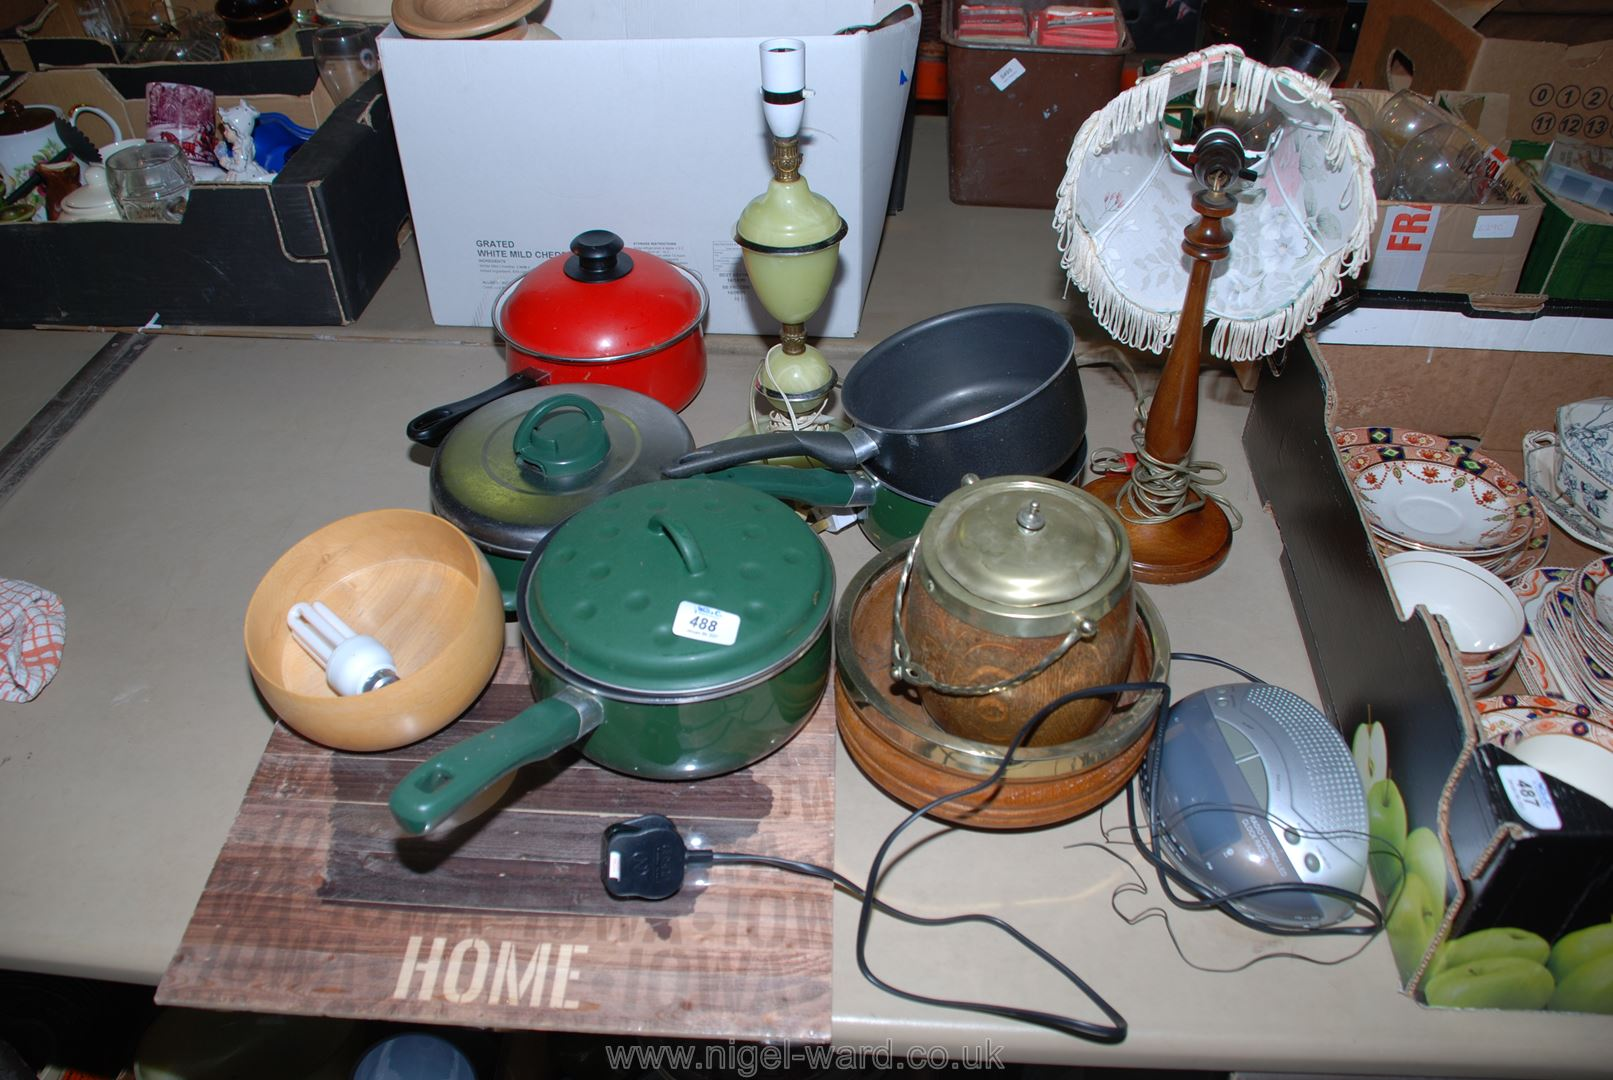 A box of saucepans, table lamps, a radio and treen.